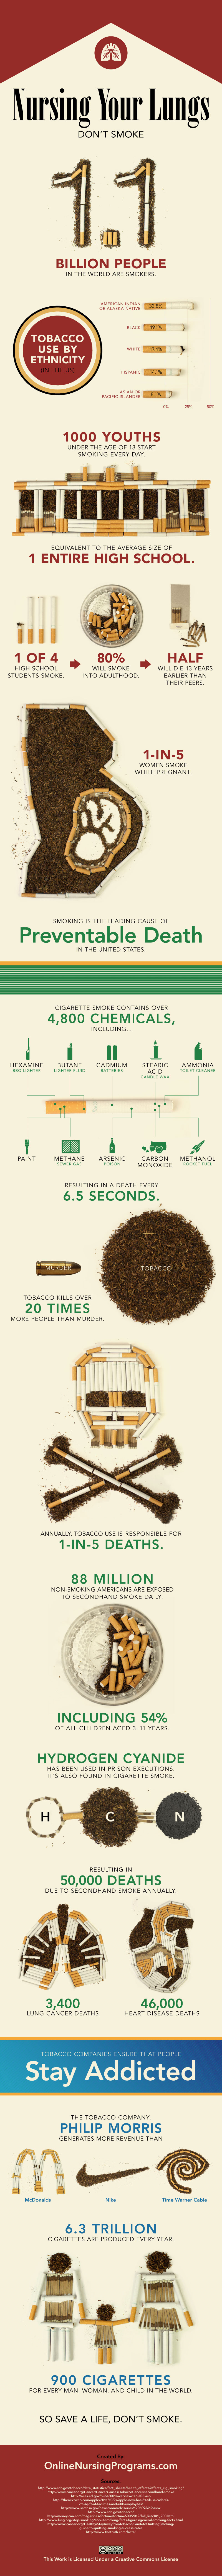 Don't smoke-your-Lungs-infographic